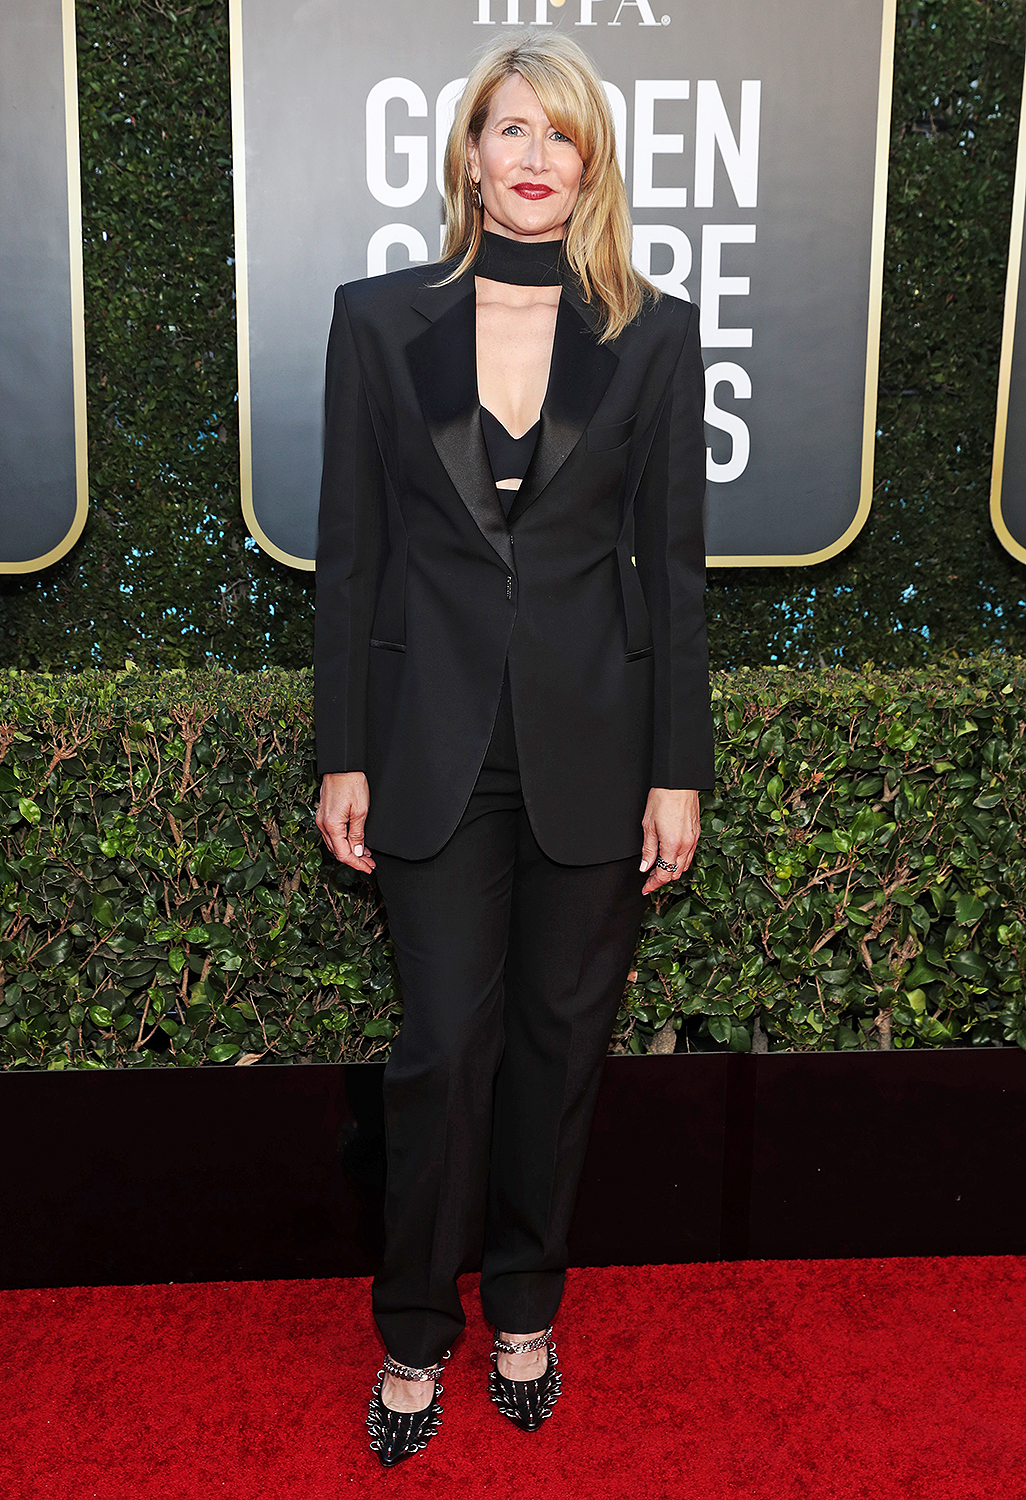 Laura Dern attends the 78th Annual Golden Globe Awards held at The Beverly Hilton and broadcast on February 28, 2021 in Beverly Hills, California.